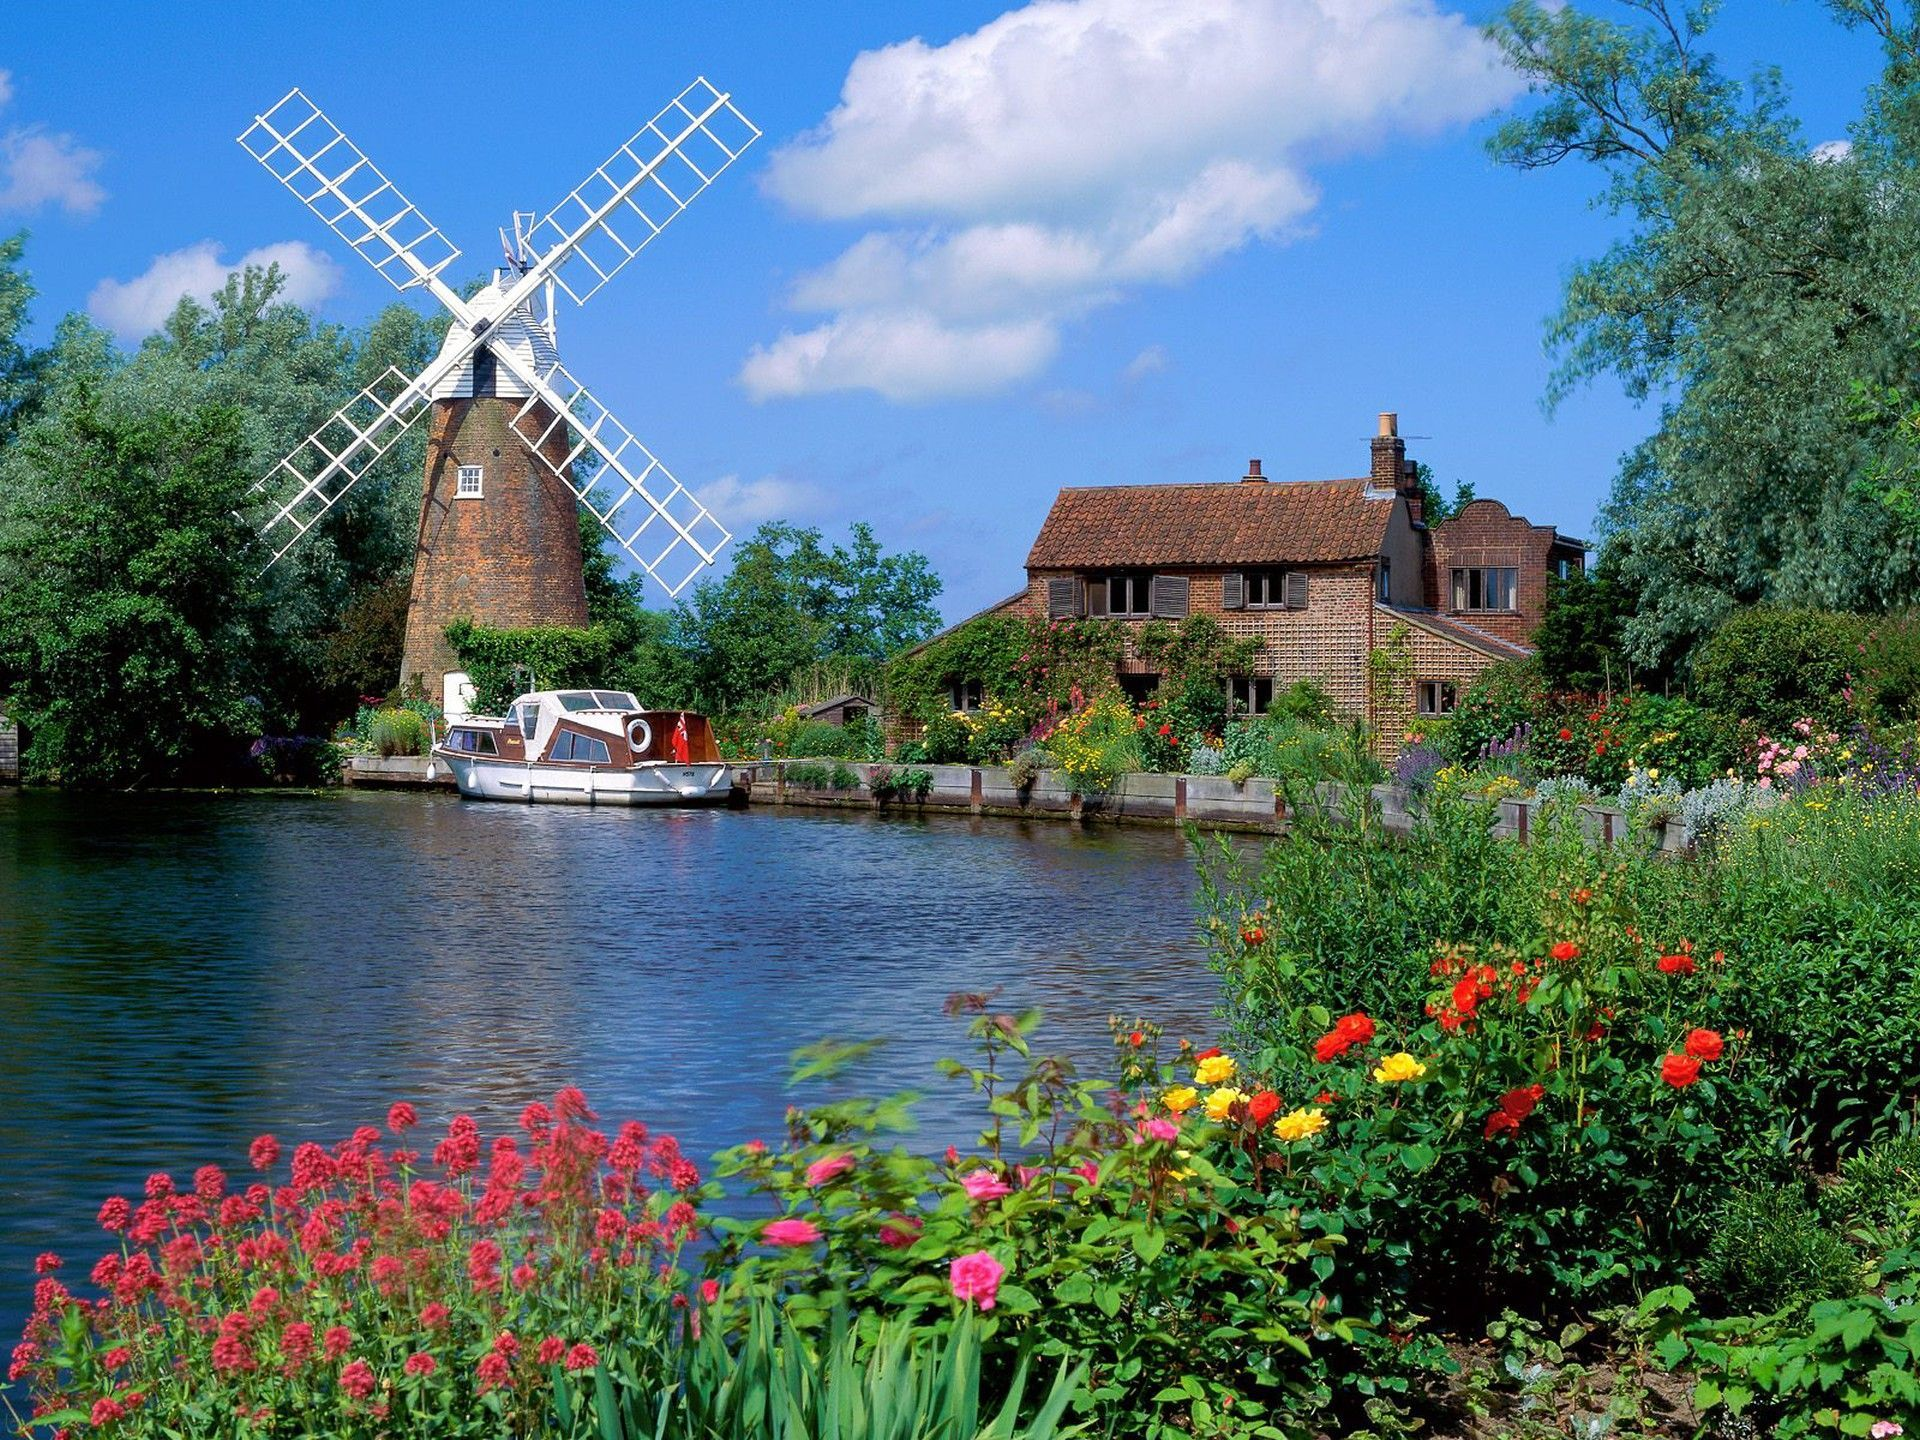 England Nature 1920x1440 HD Wallpapers Pack 1 - Photo 18 of 18 ...